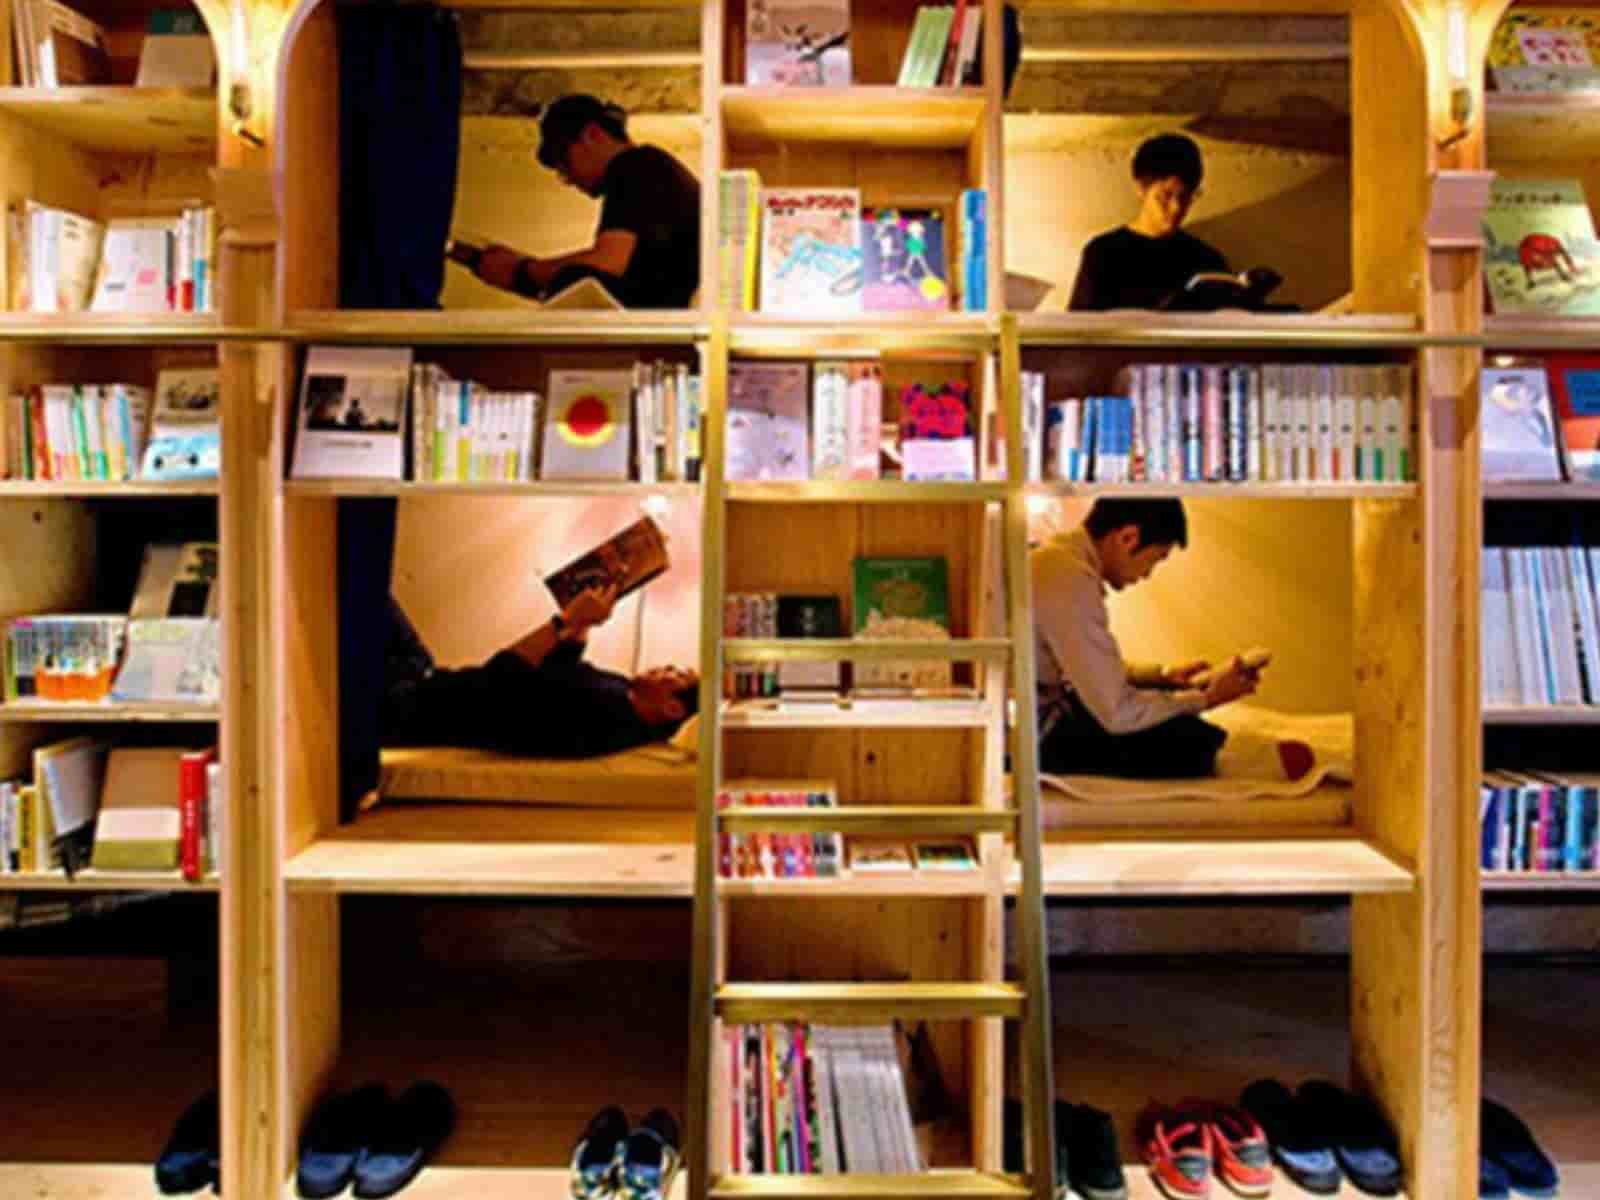 Hotel Room With Bunk Beds In Japan